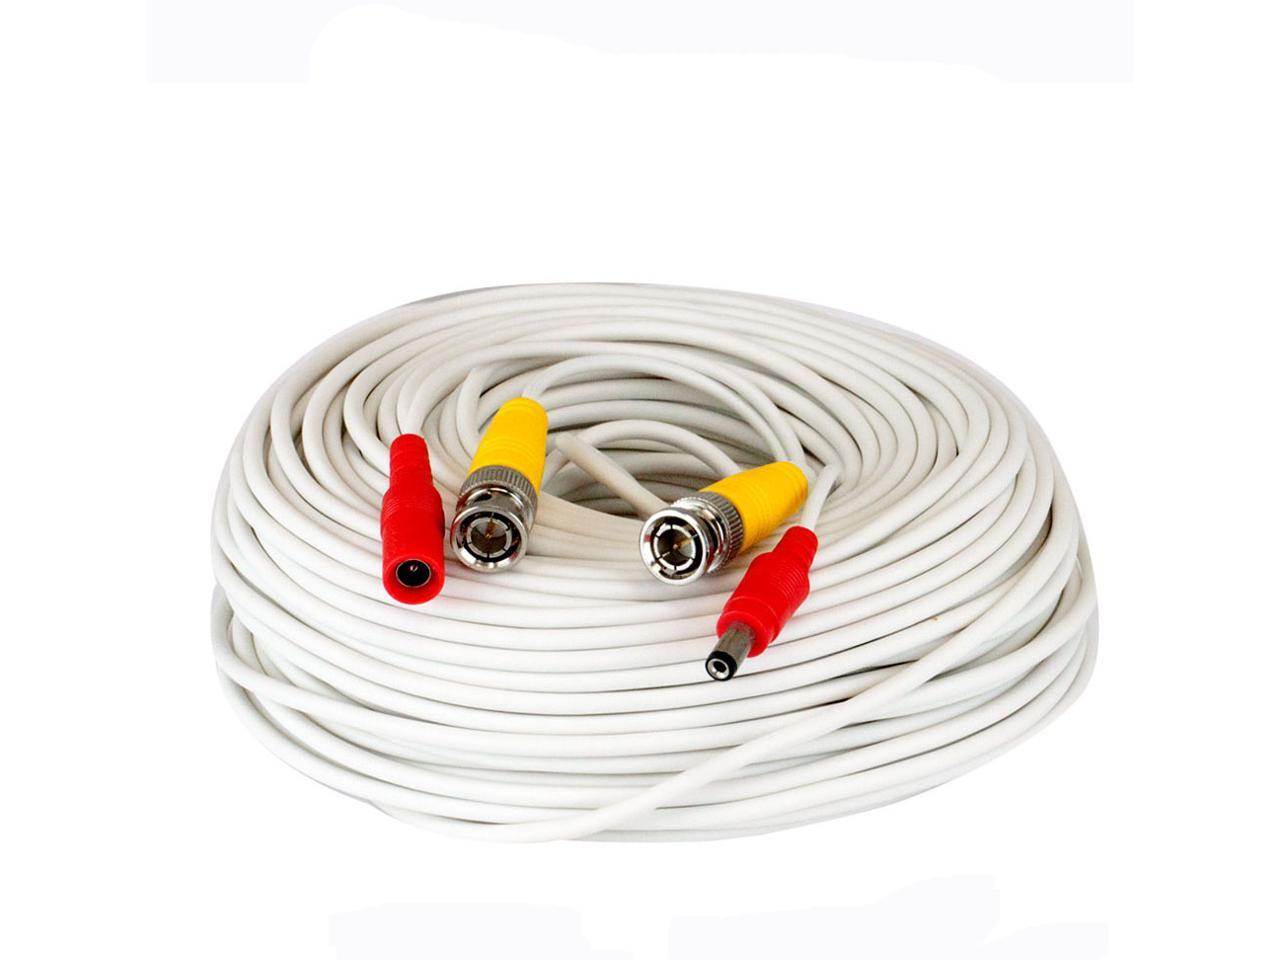 All in one 150ft HEAVY DUTY PREMADE SIAMESE CABLE White color